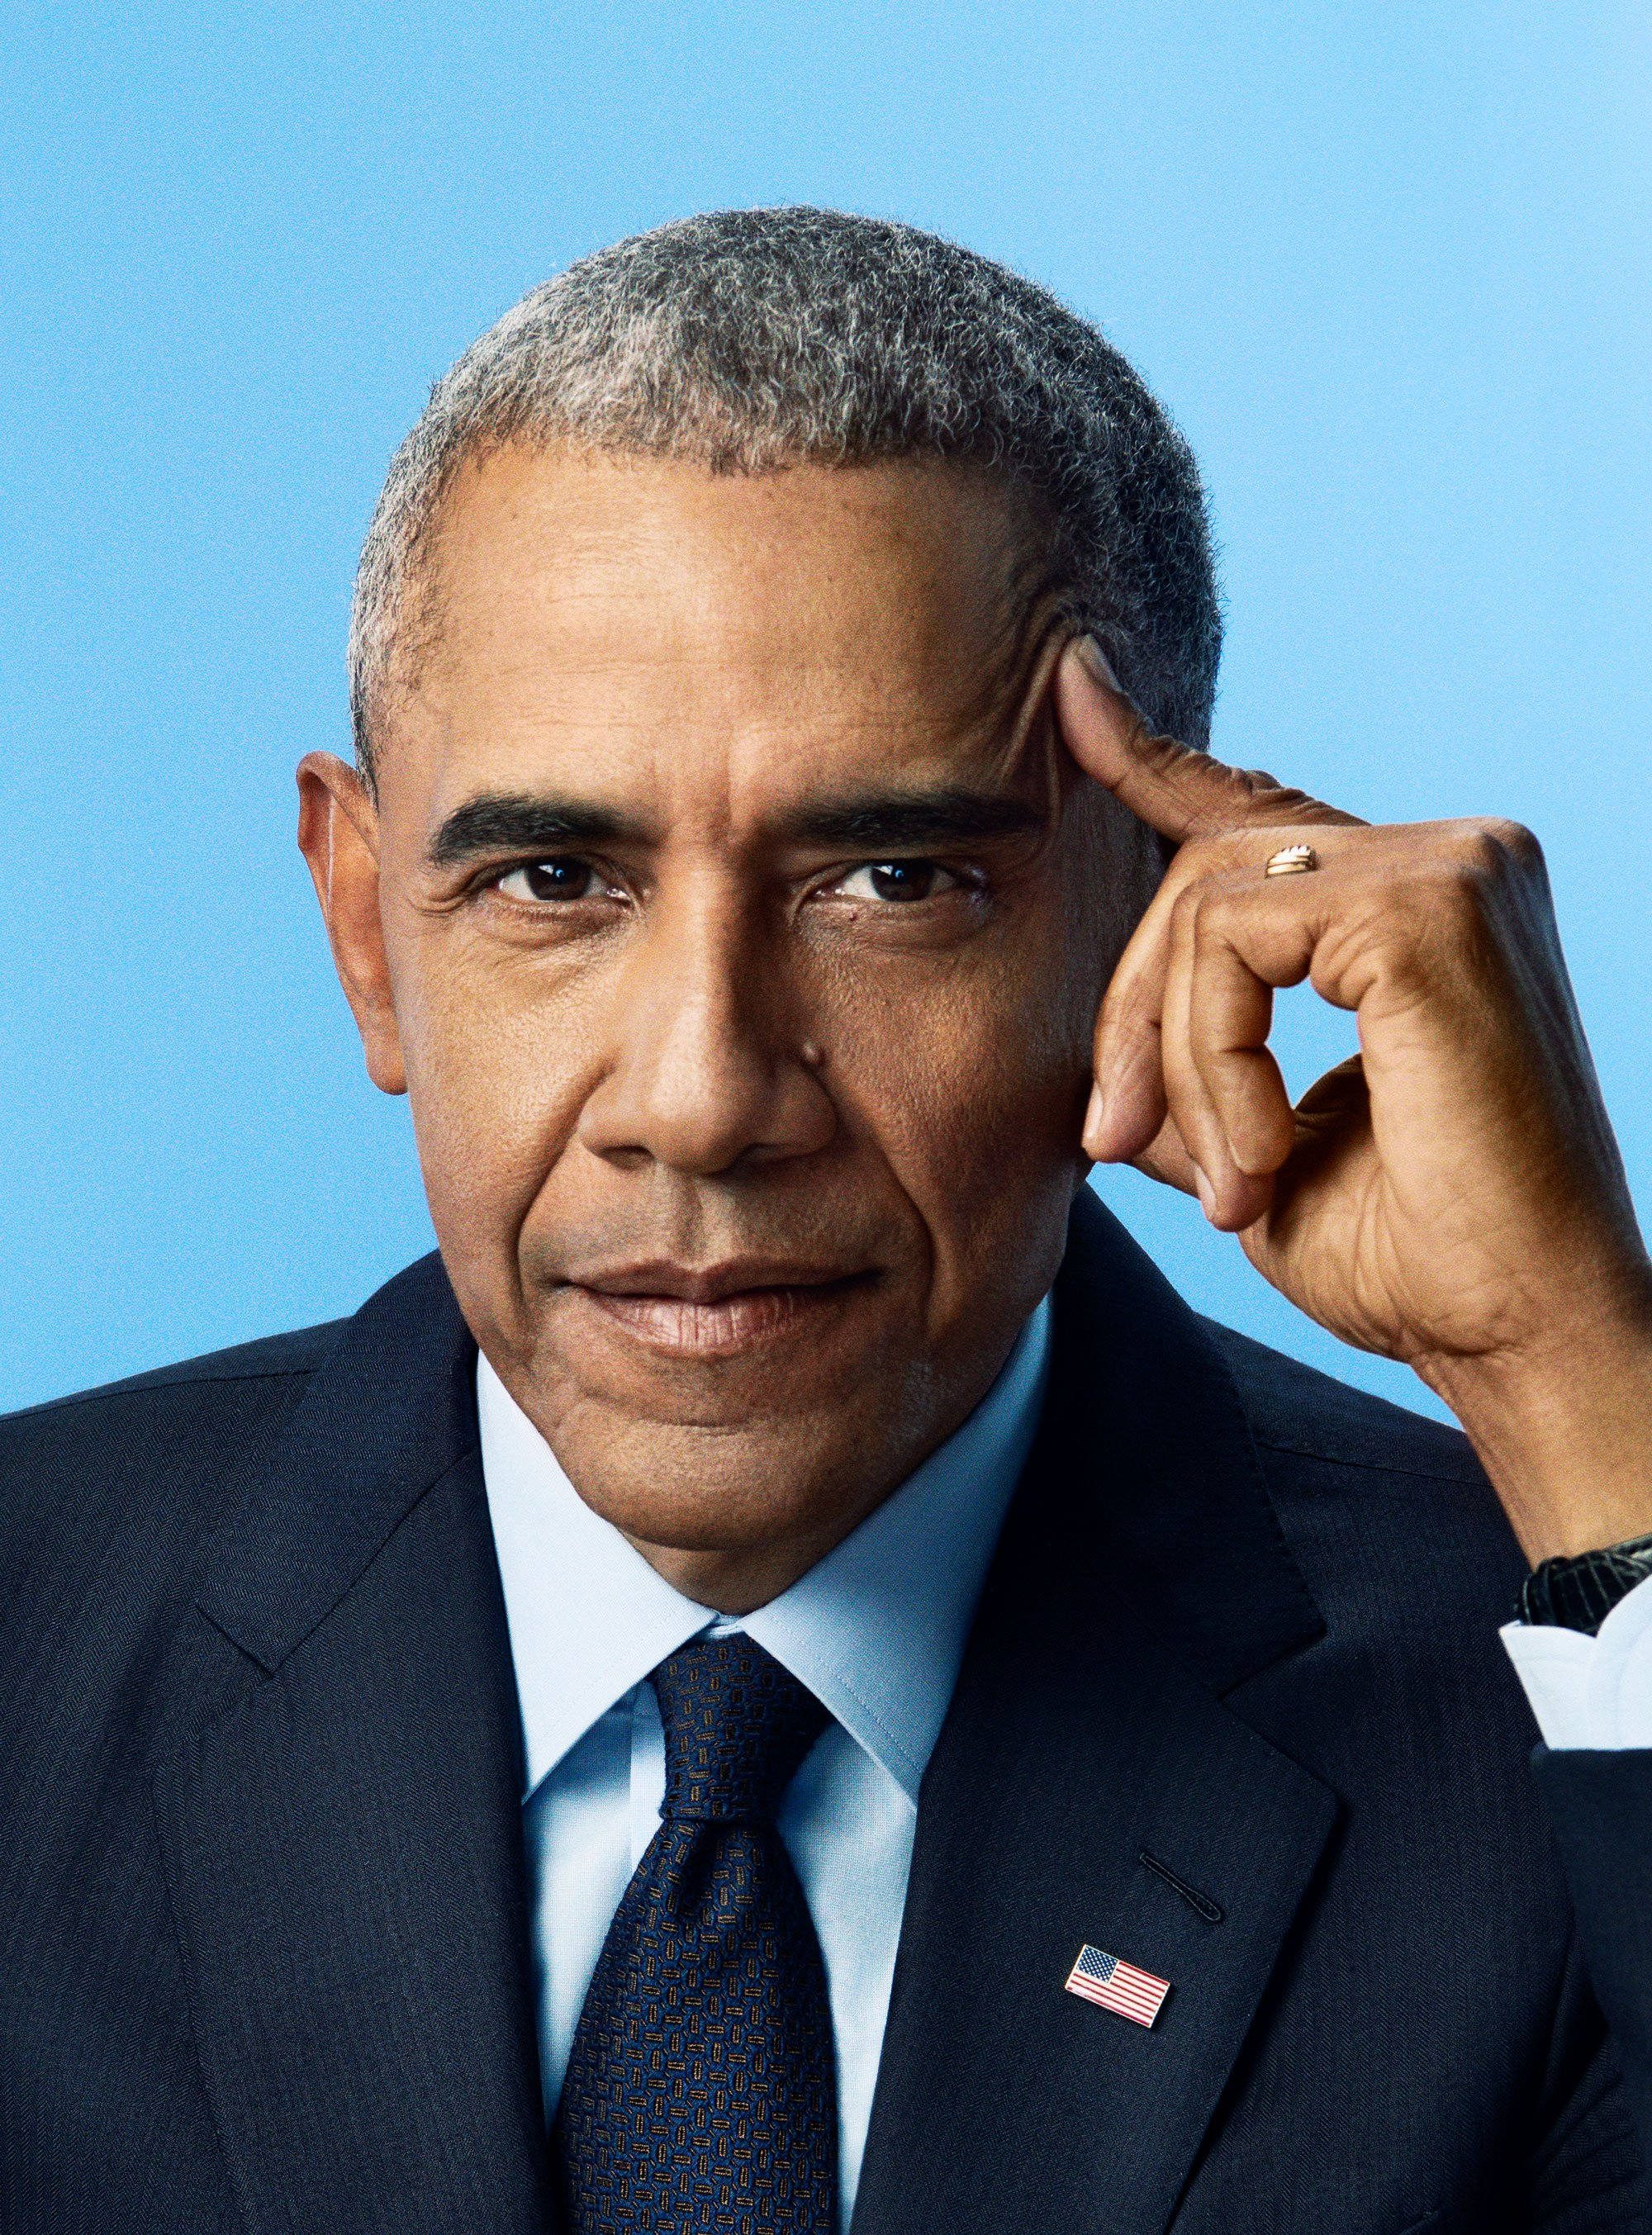 President Obama_ credit Pari Dukovic- A Promised Land author photo